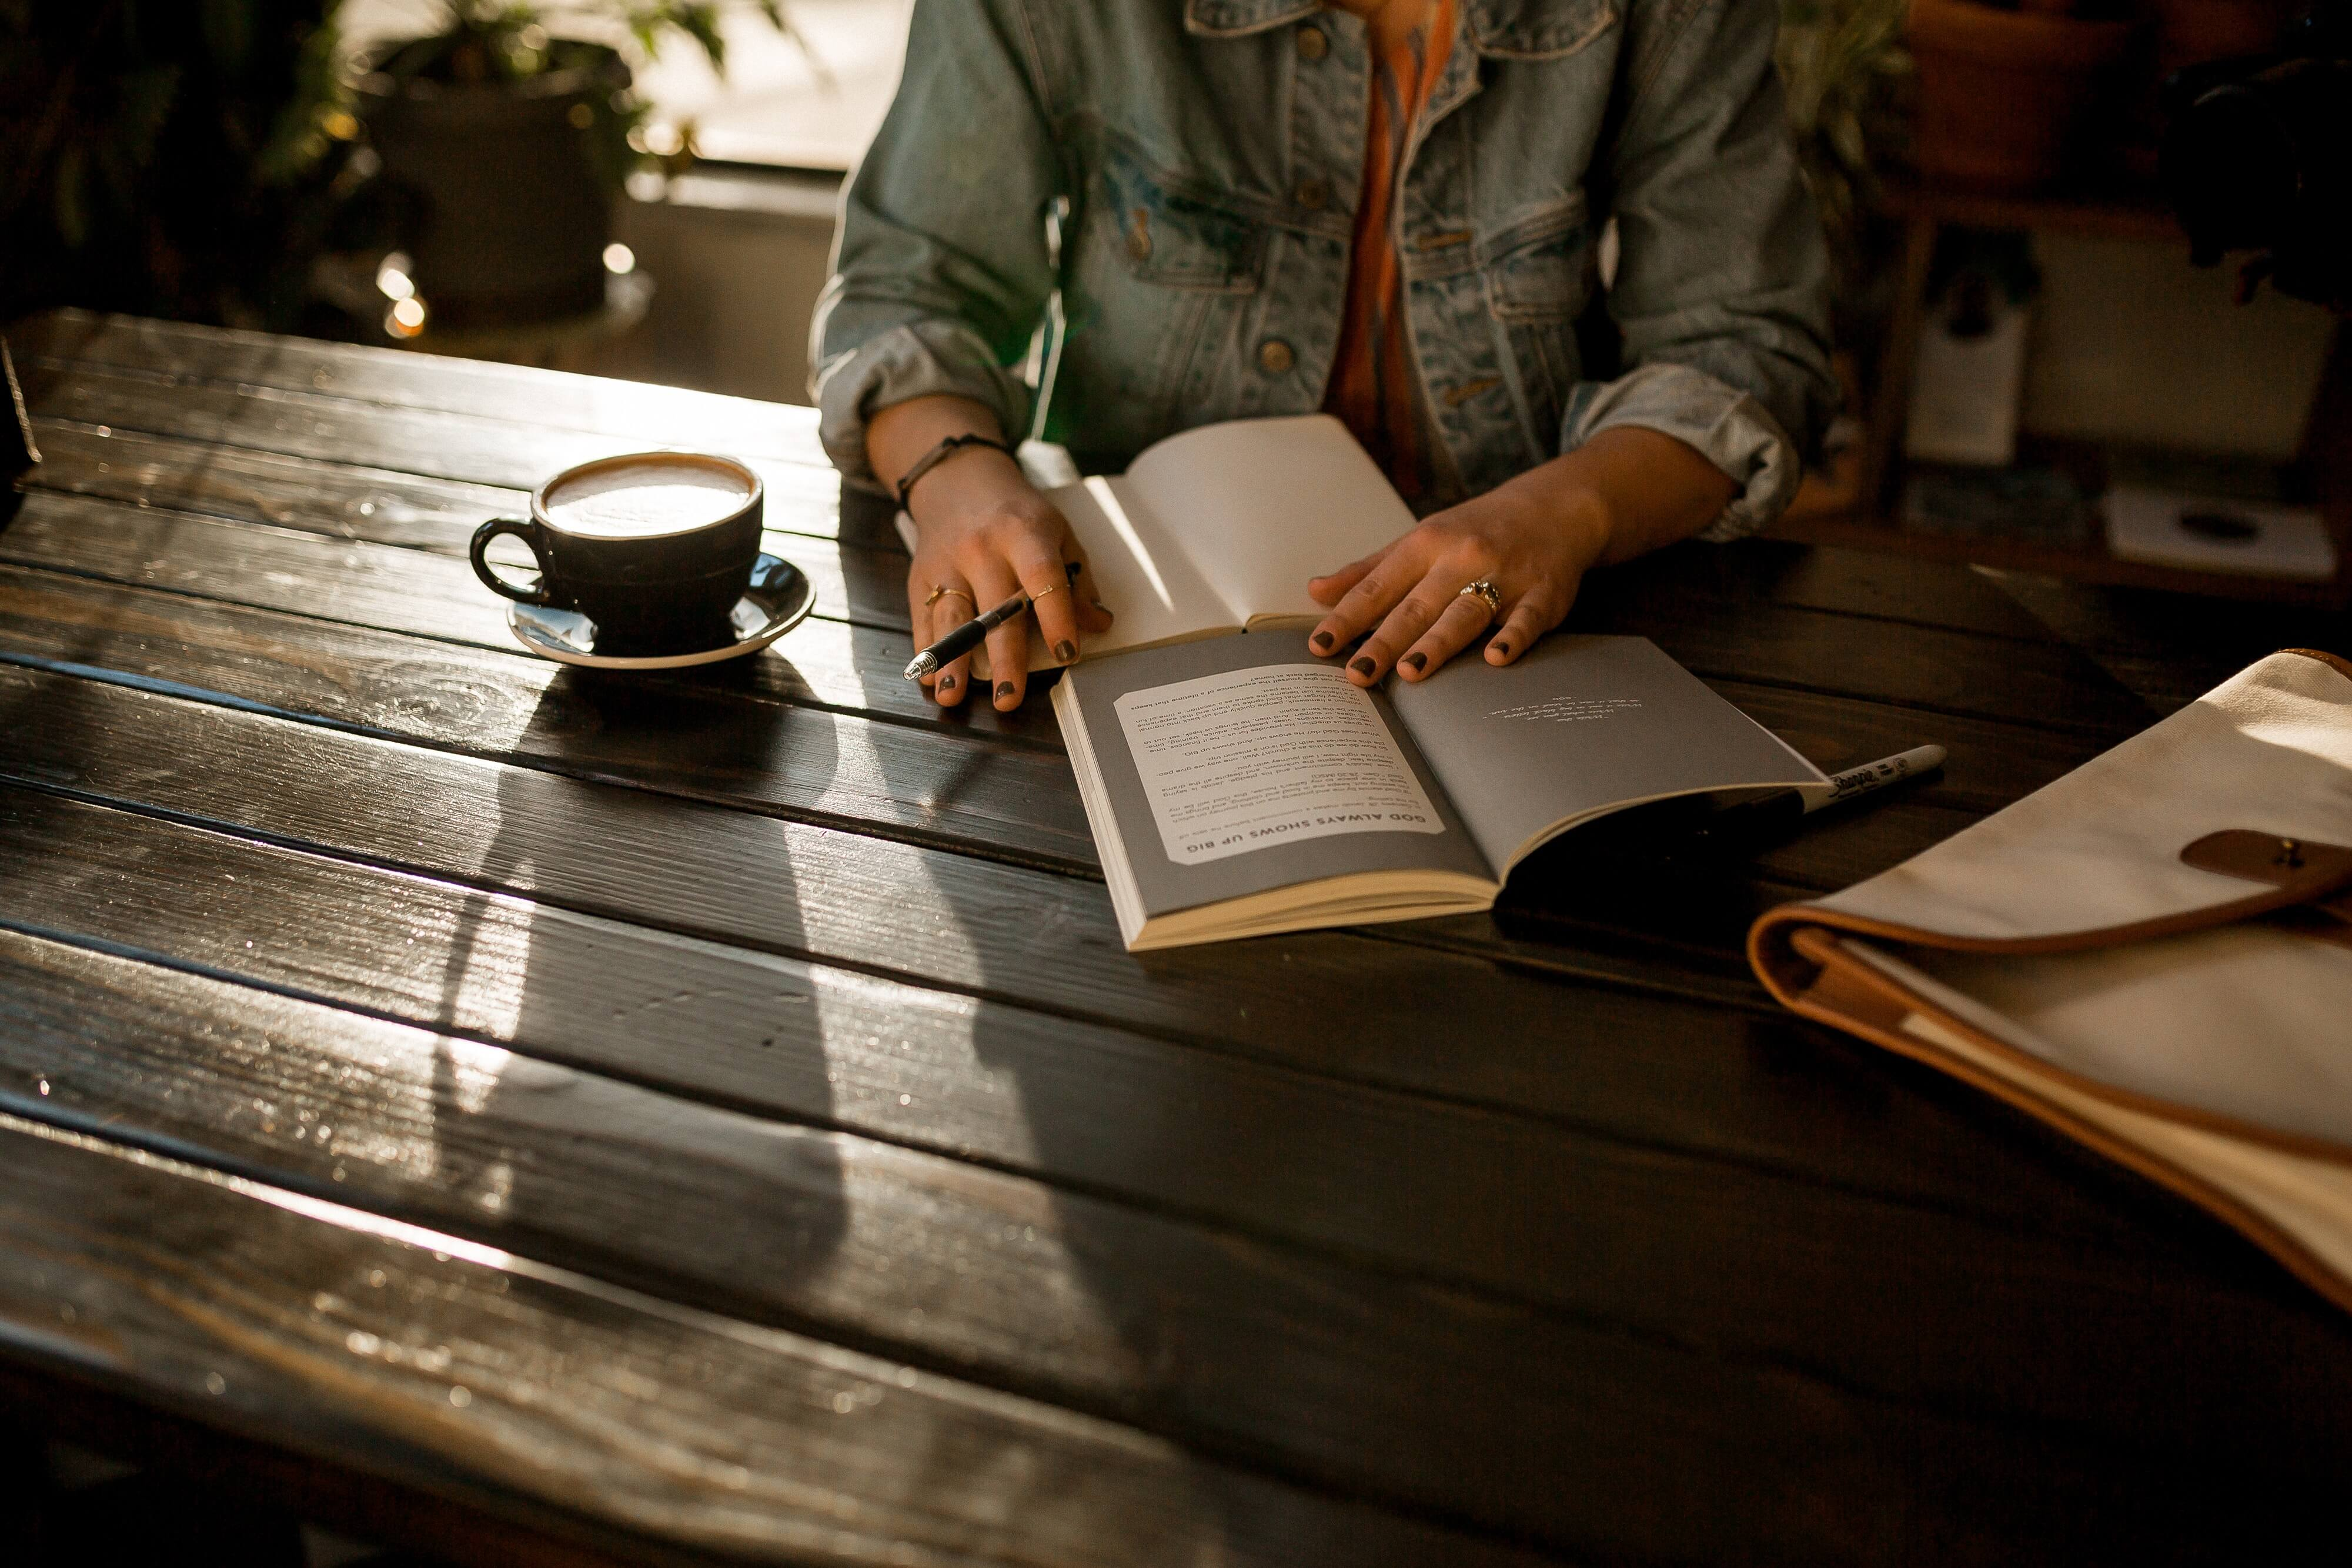 Person with a denim jacket writing on a wooden table, with a cup of coffee